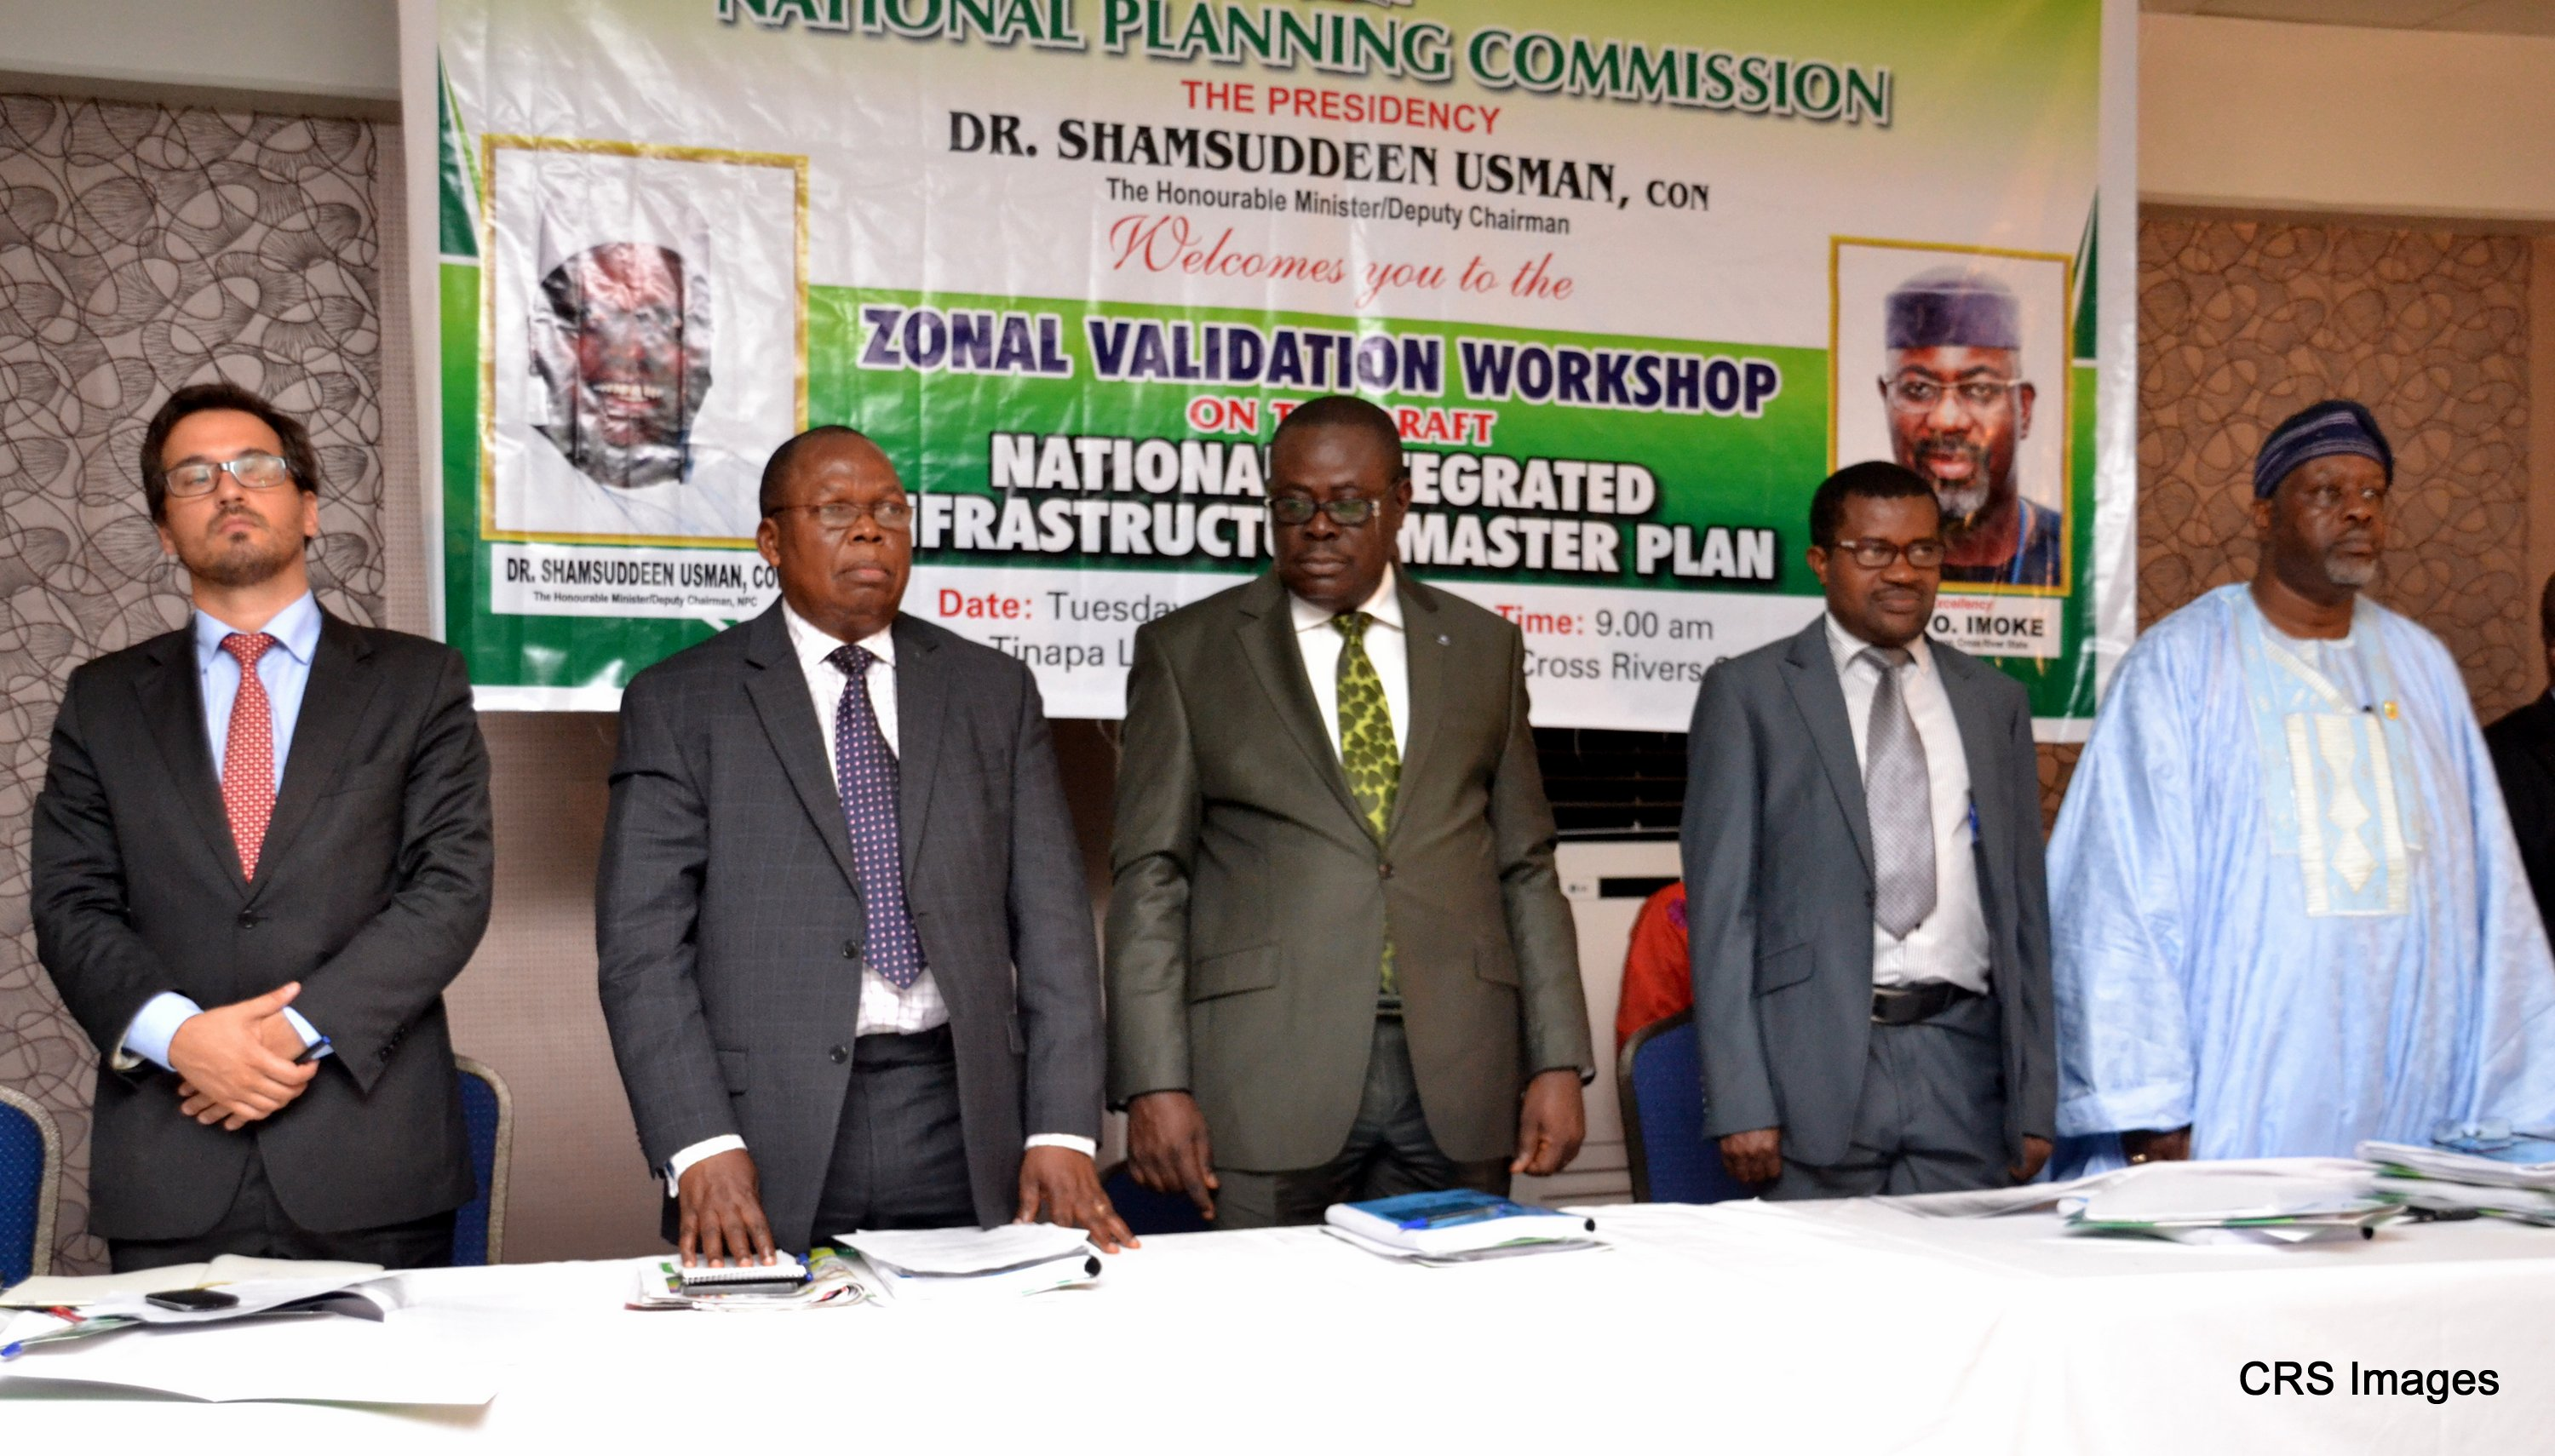 Mr. Bruno Carrilho, Mr. Fidelis Ugbo-Rep. Minister of National Planning Commission, Rep. of Senator Imoke, Deputy Governor of Cross River State, Mr. Efiok Cobham, Mr. Ndem Ayara- Ndiyo, Economic Adviser to Imoke and Engr. Olugbenga Adegun, Director, Infrastructure-NPC at the Zonal Validation Workshop on the draft National Integrated Infrastructure Master Plan( NIIMP) in Calabar.